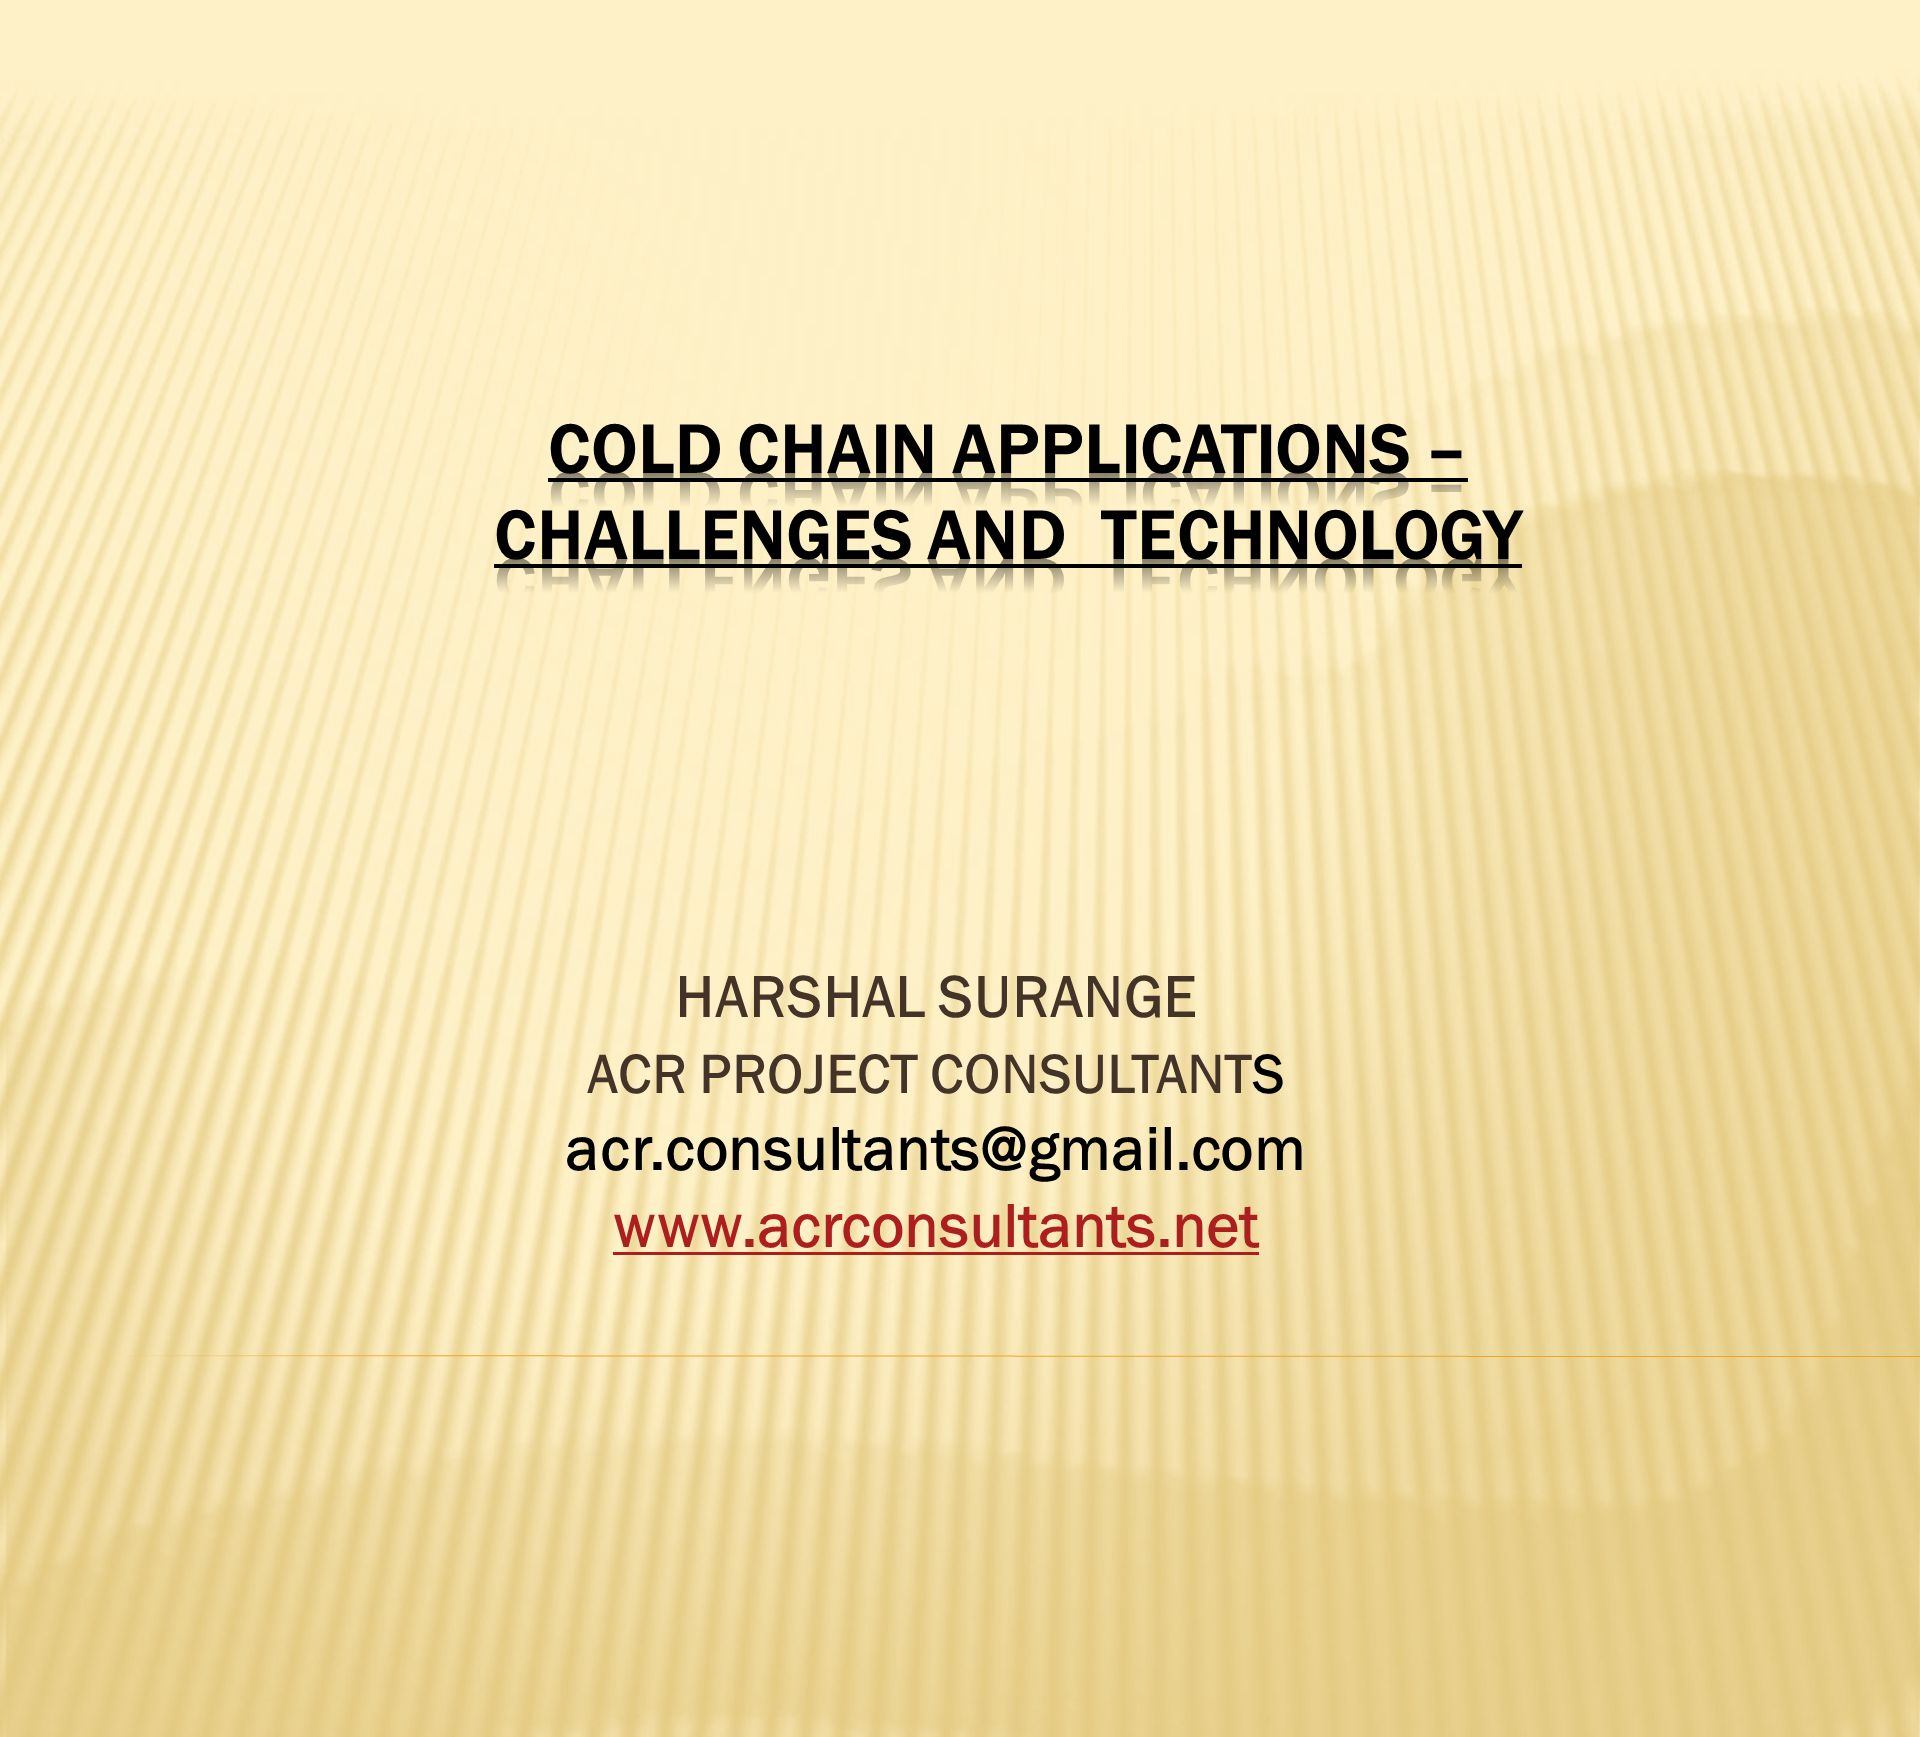 COLD CHAIN APPLICATIONS – CHALLENGES AND TECHNOLOGY